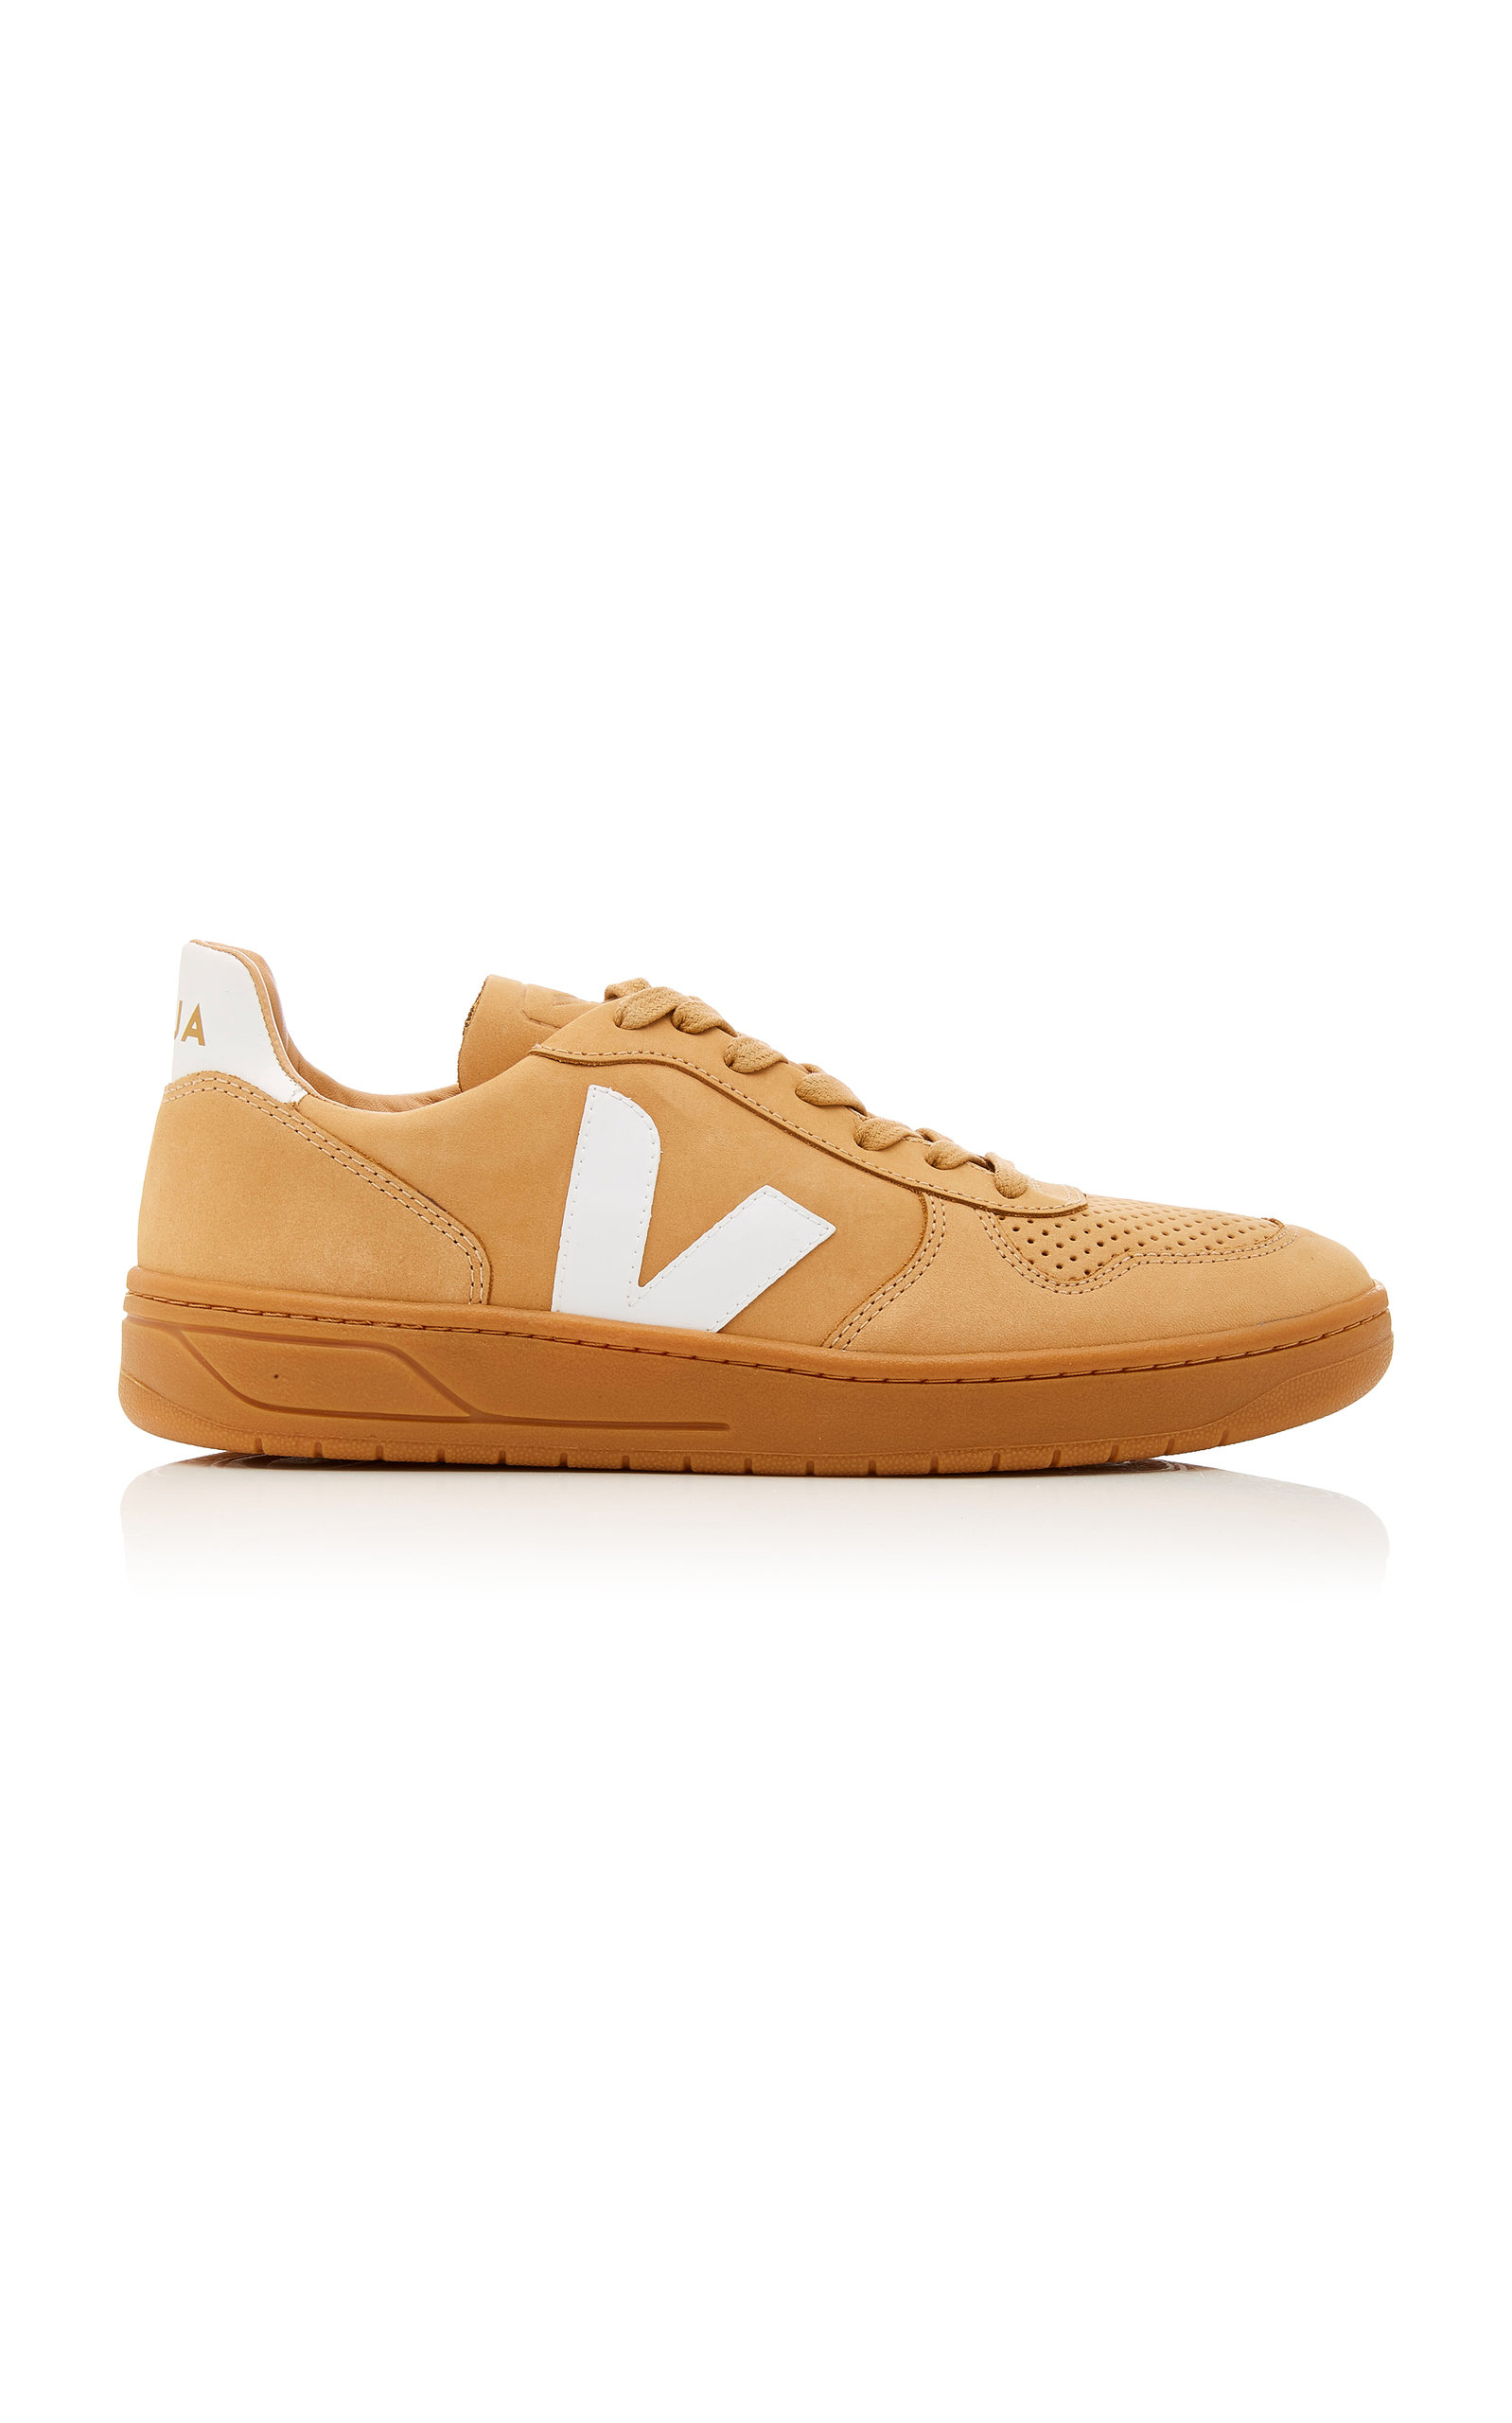 VEJA BASTILLE TWO-TONE LEATHER-TRIMMED NUBUCK SNEAKERS